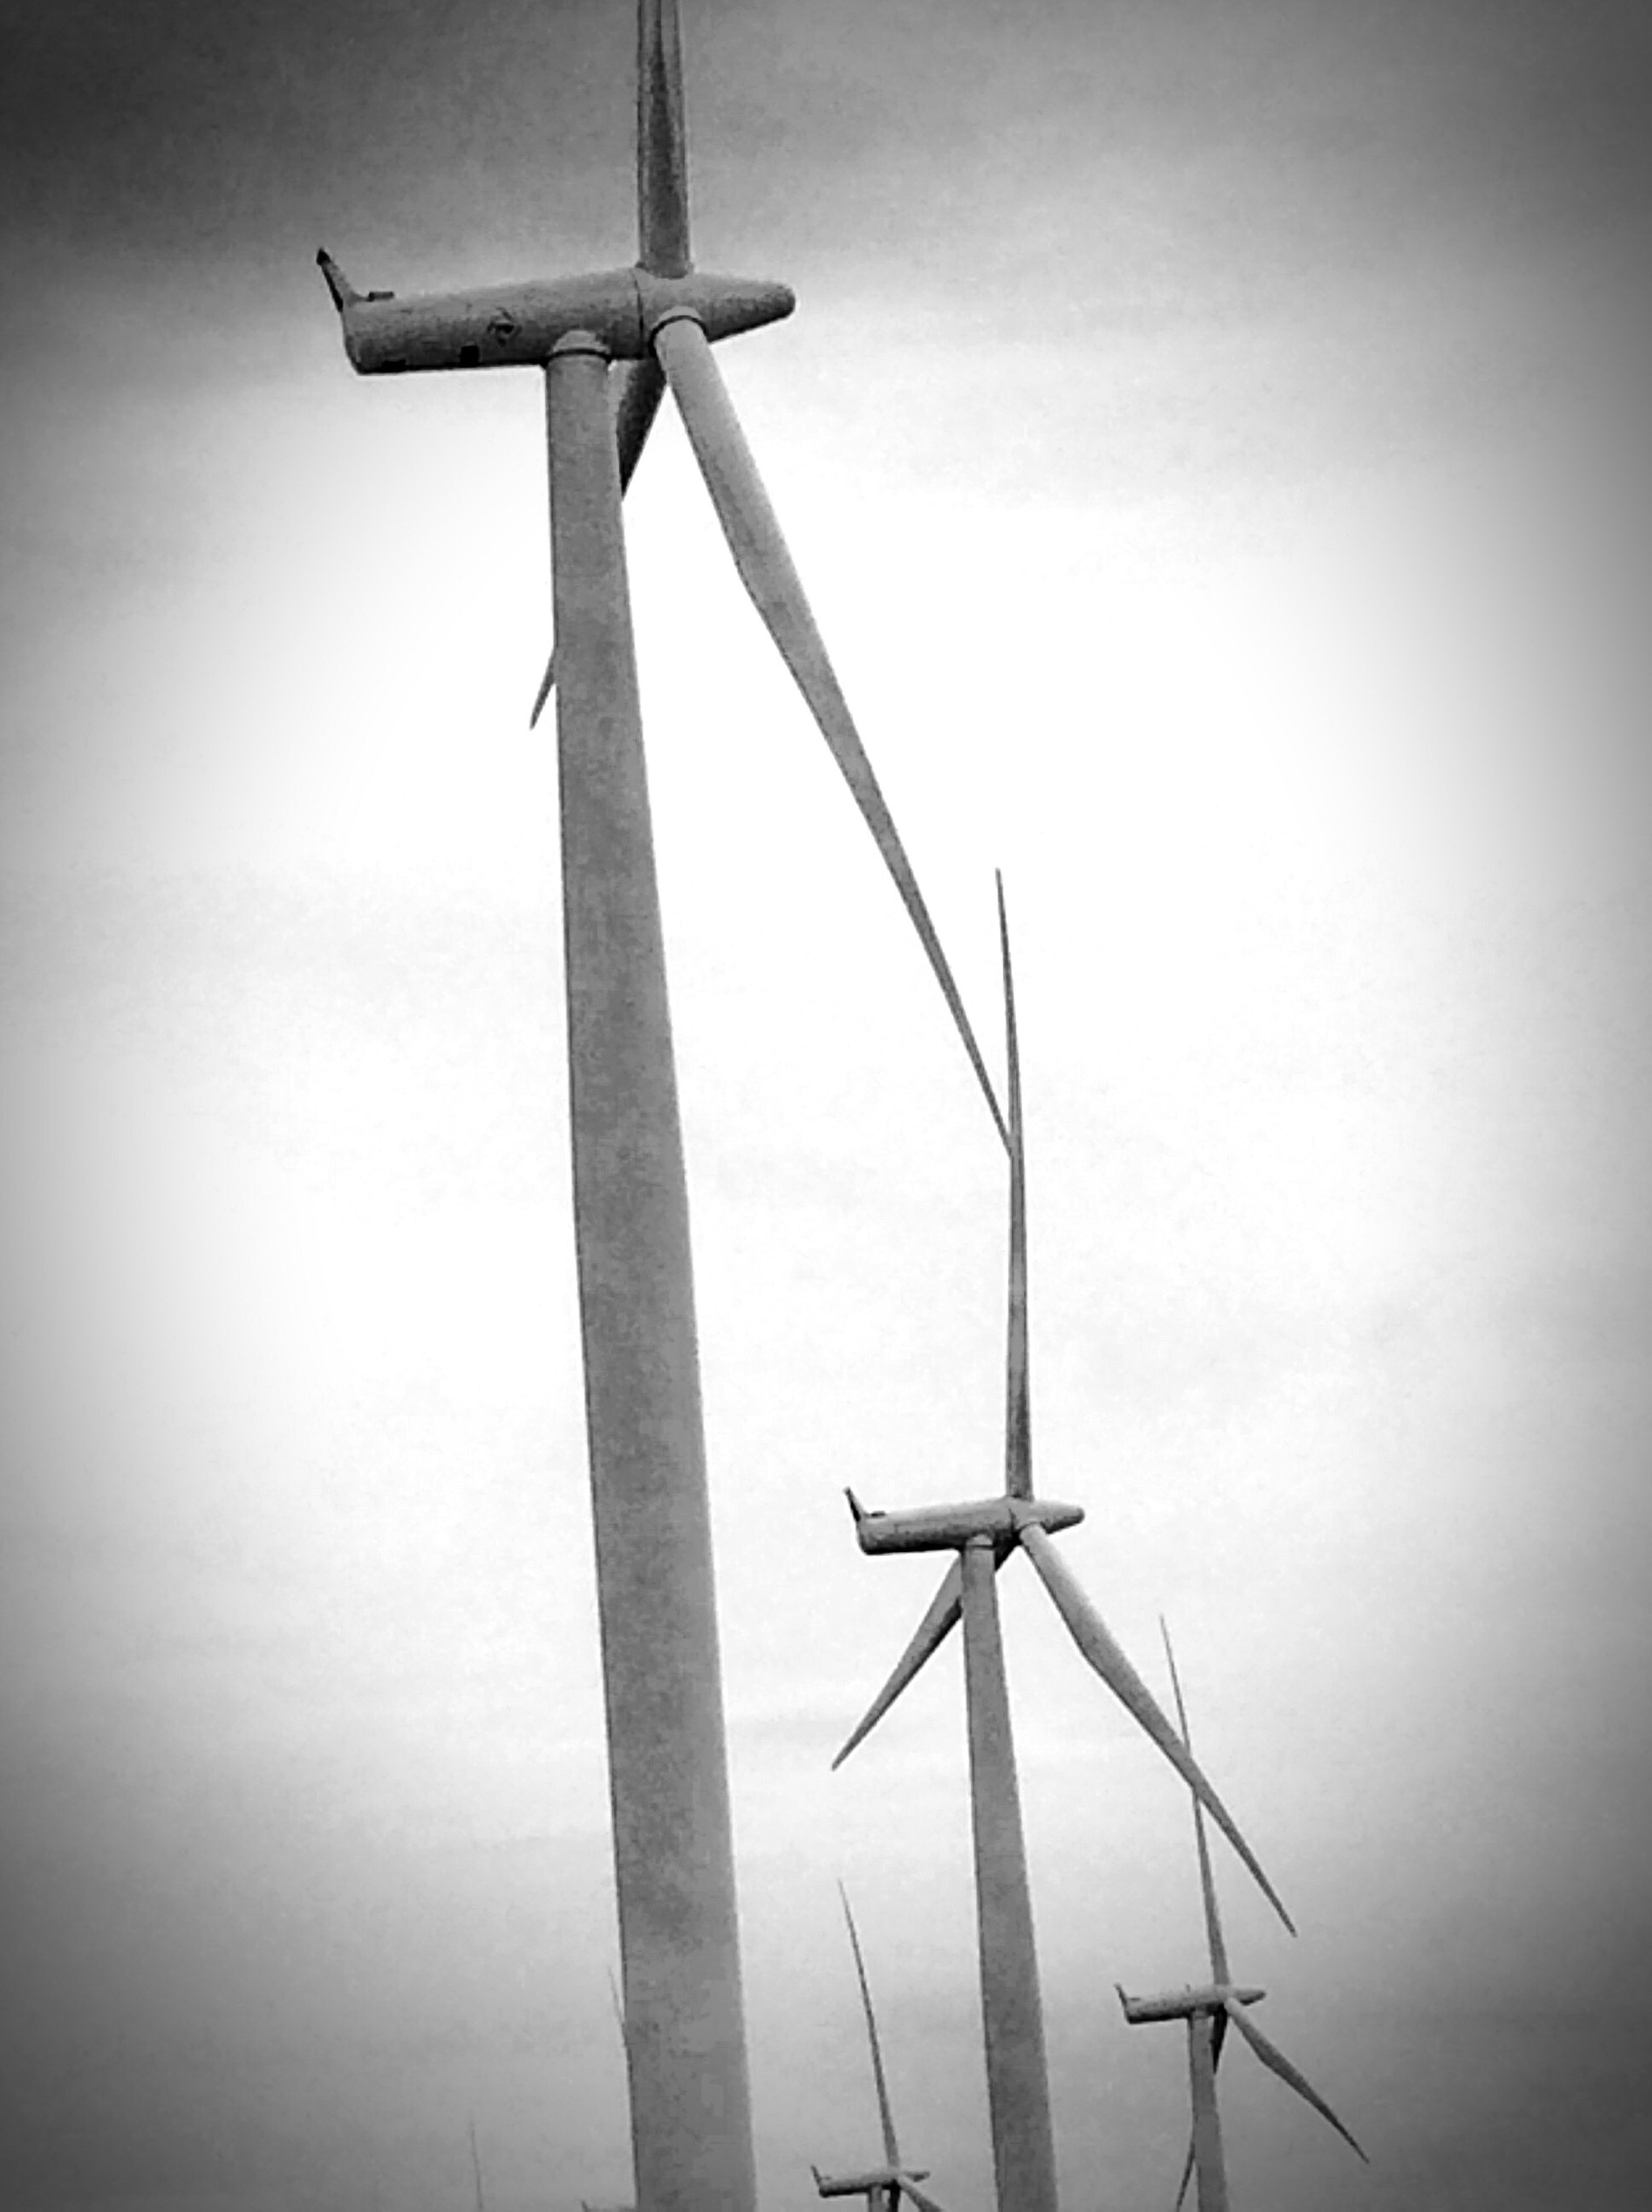 wind power, wind turbine, renewable energy, alternative energy, windmill, environmental conservation, fuel and power generation, low angle view, sky, technology, traditional windmill, cross, silhouette, religion, nature, clear sky, no people, outdoors, tranquility, field